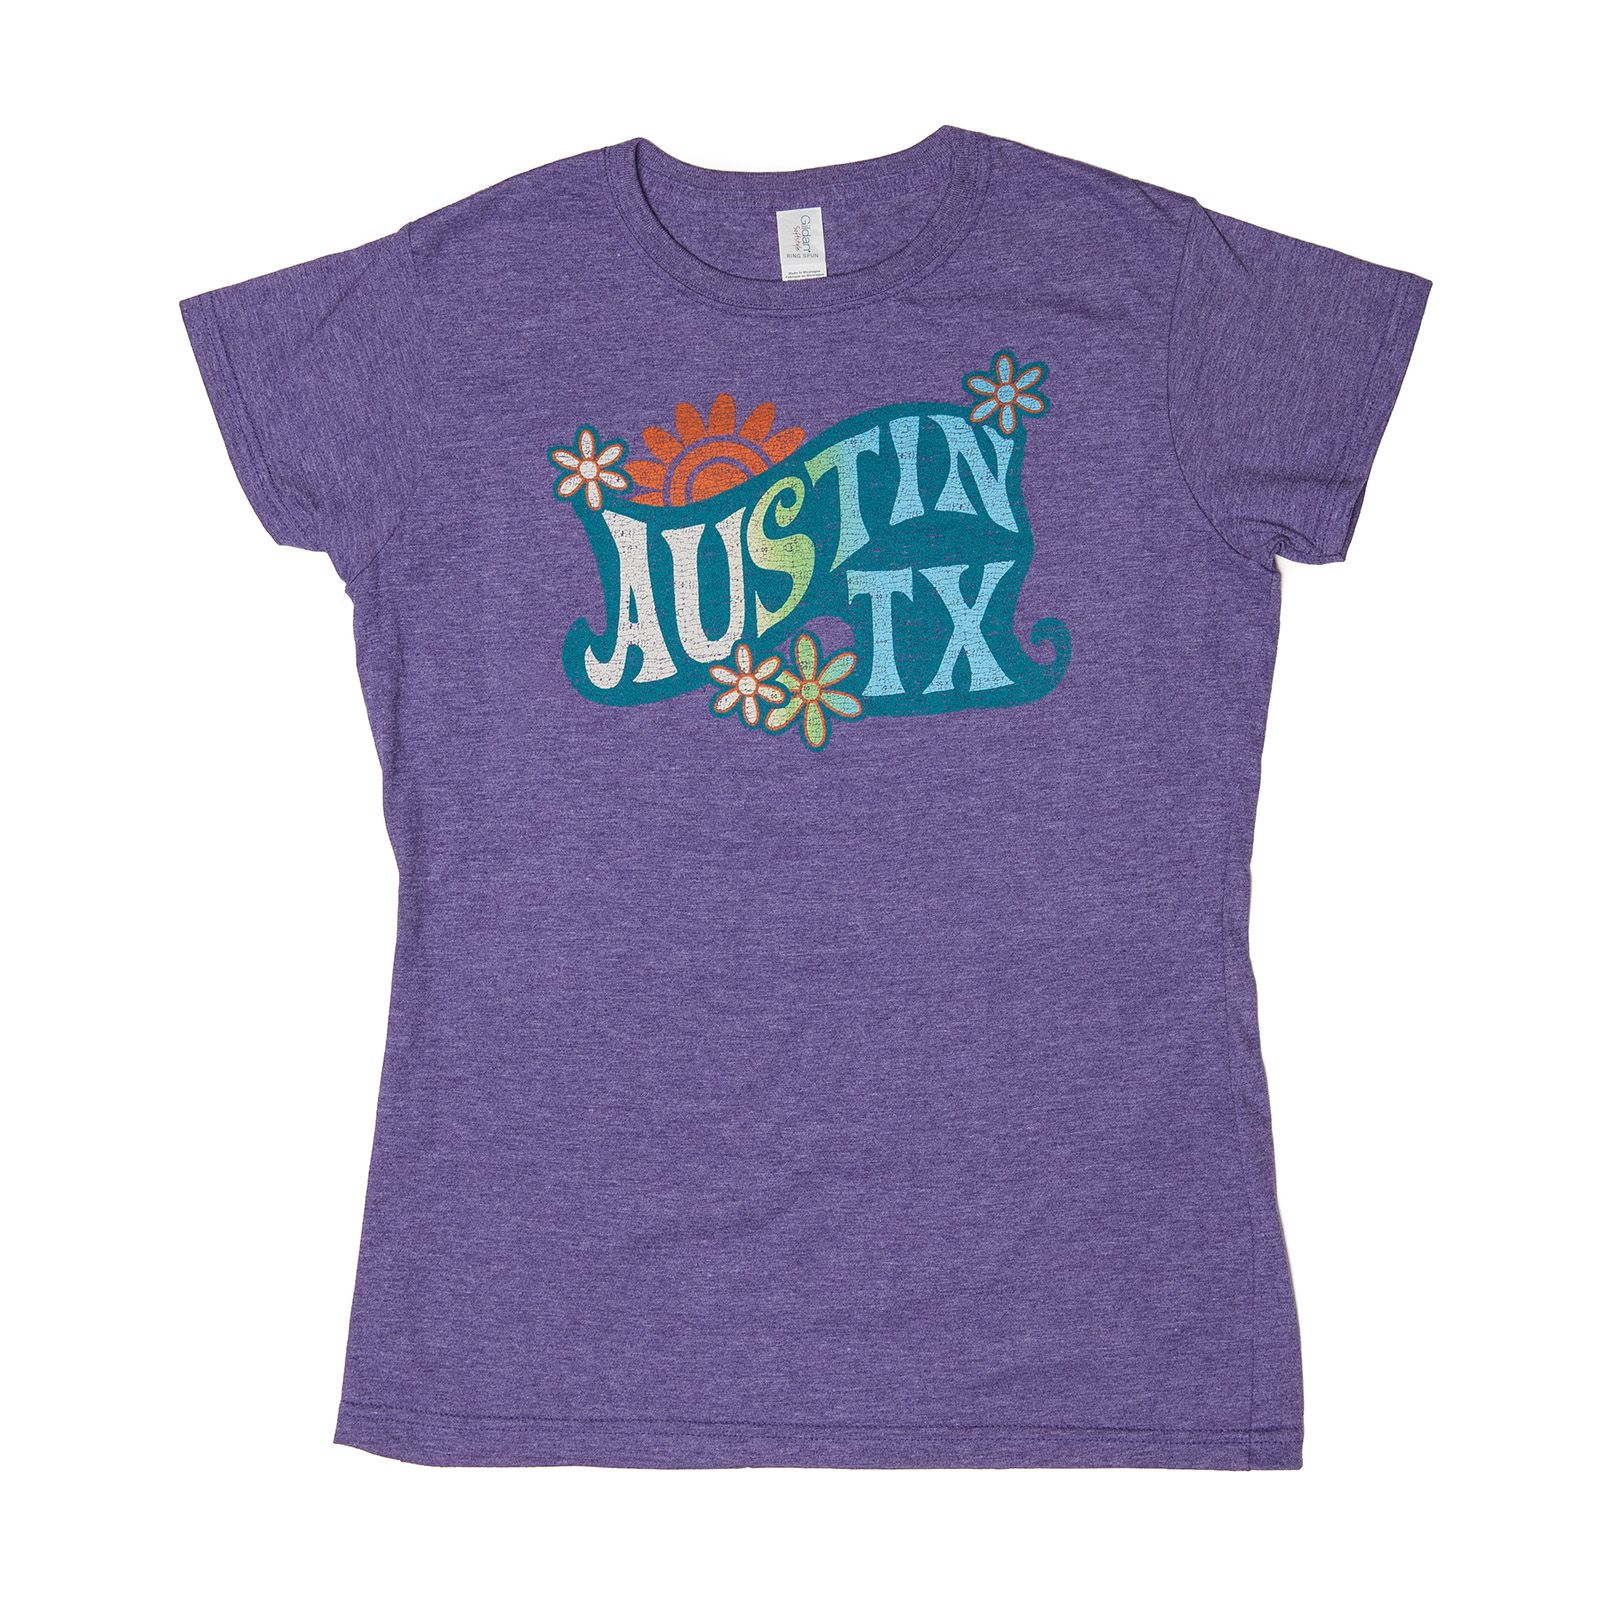 Groovy Austin Texas Purple Women's T-Shirt